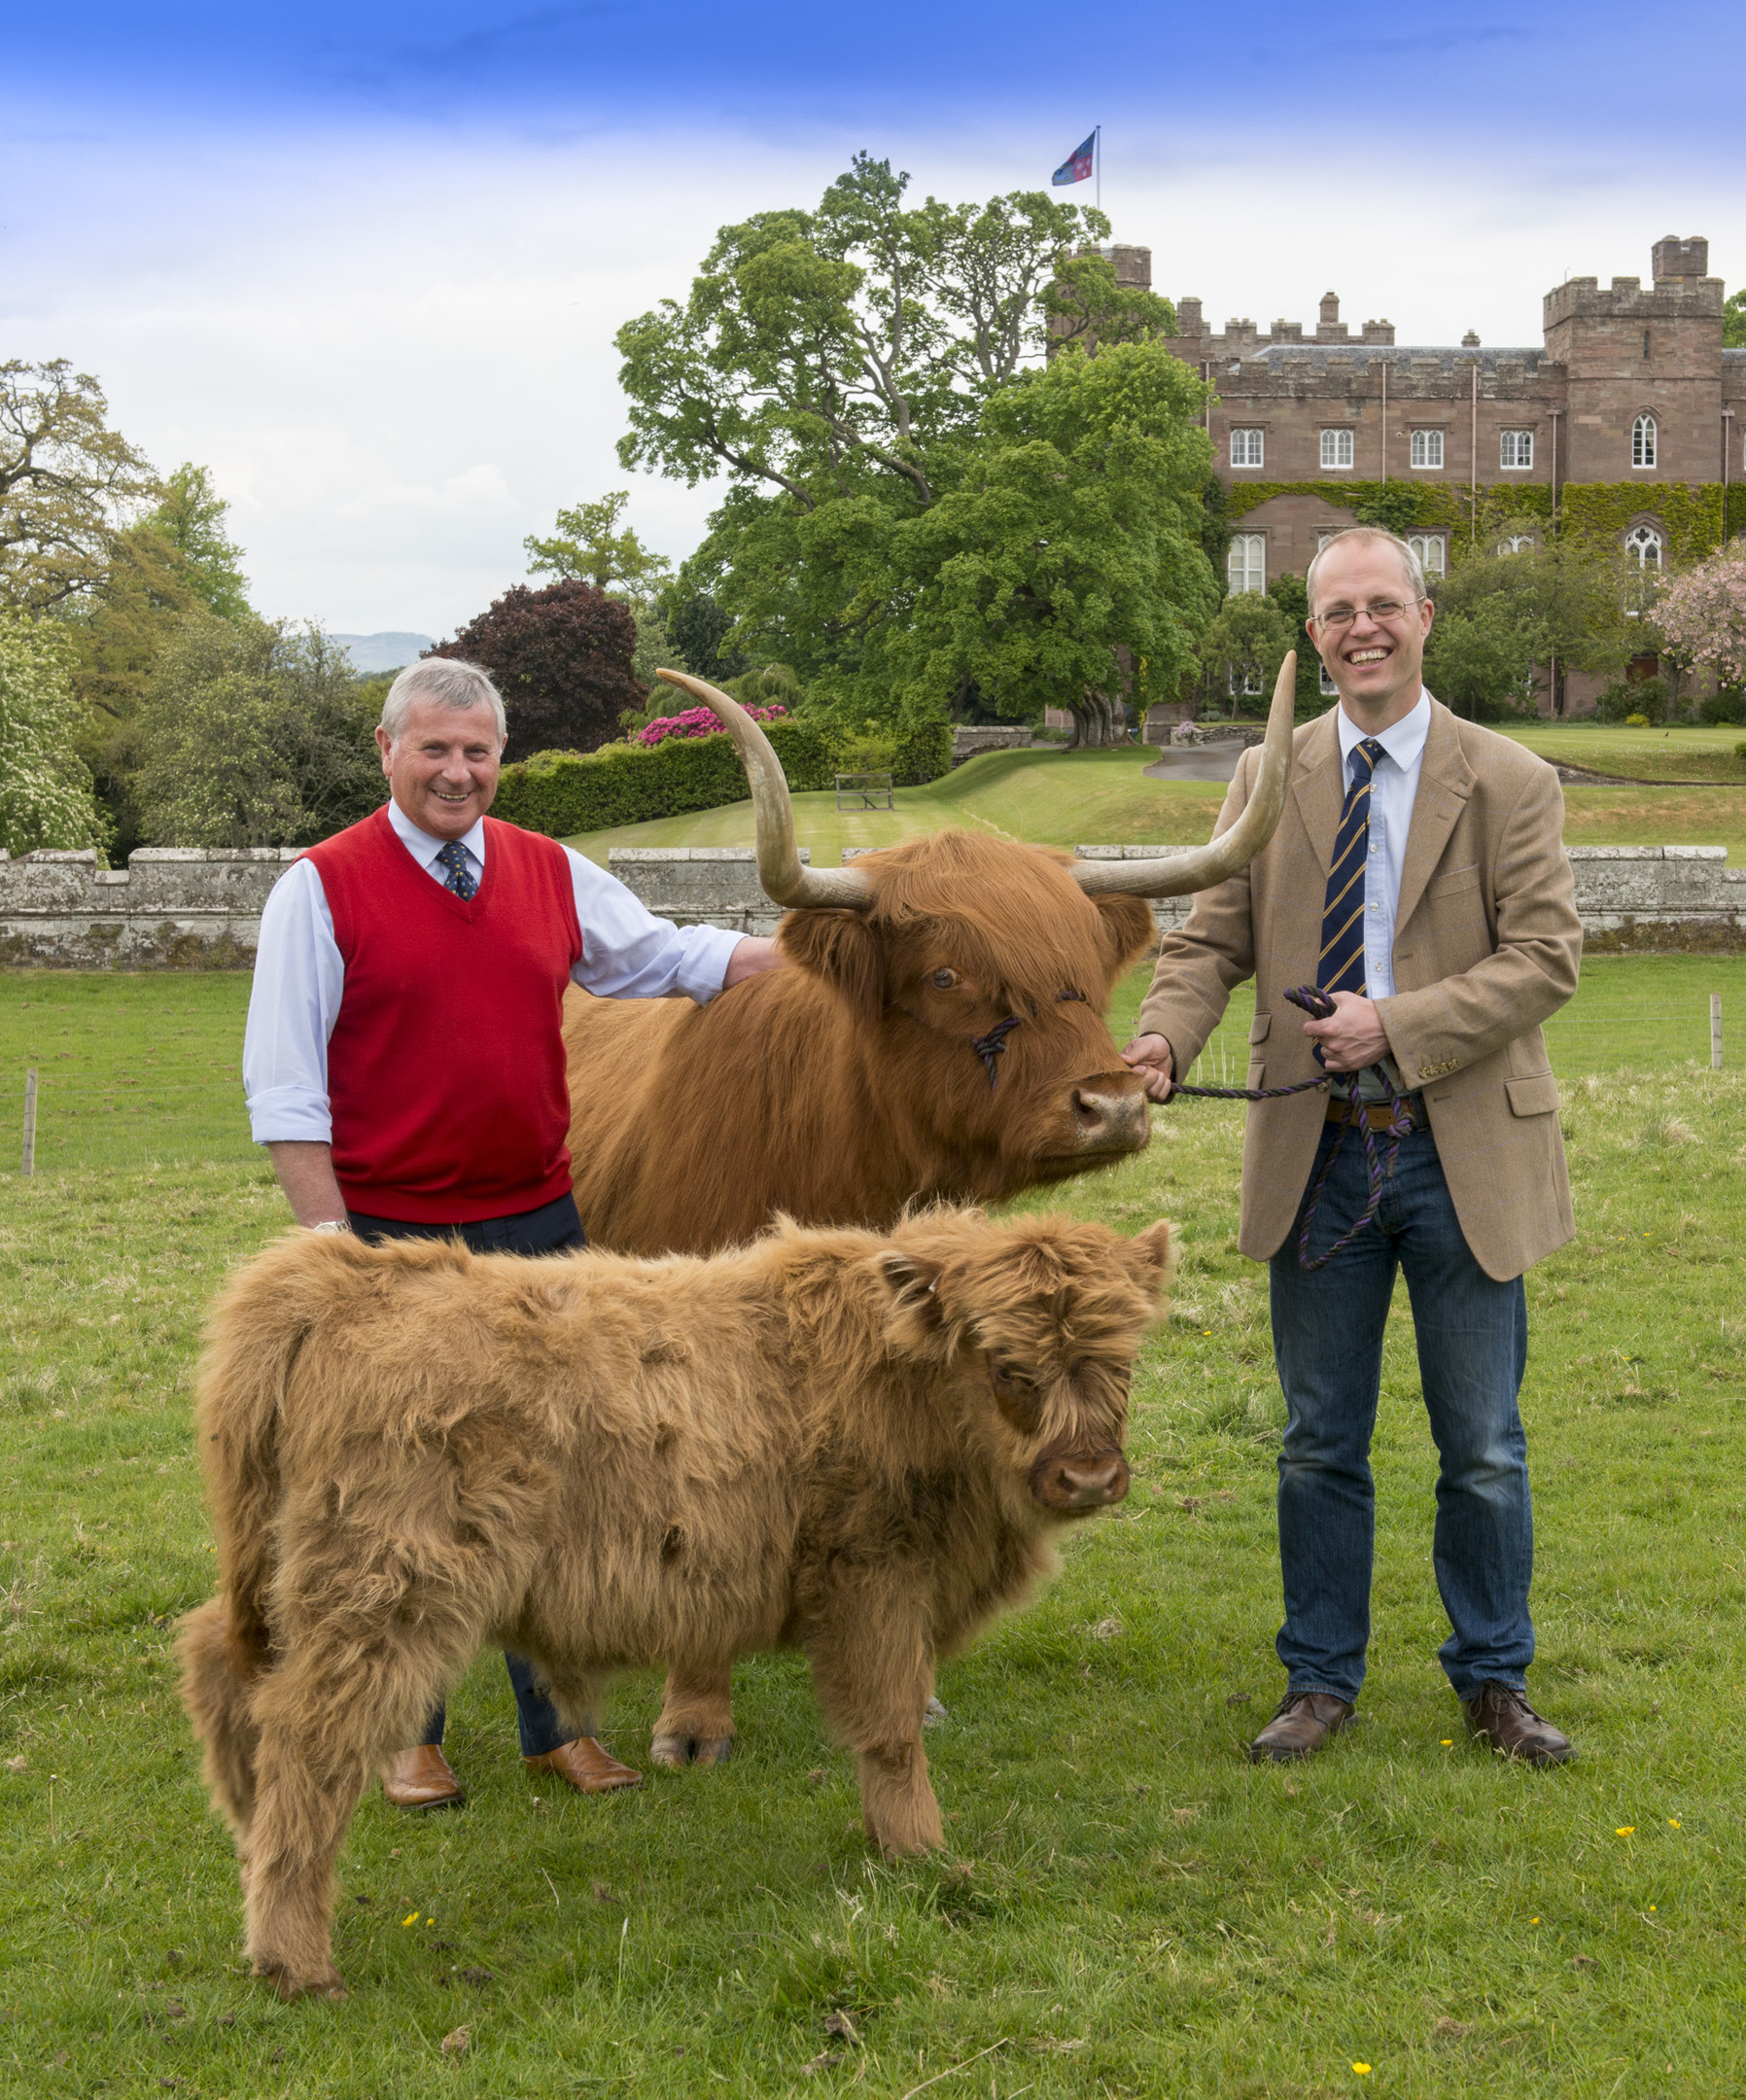 Some of the finest cattle in the country will be on show at Perth